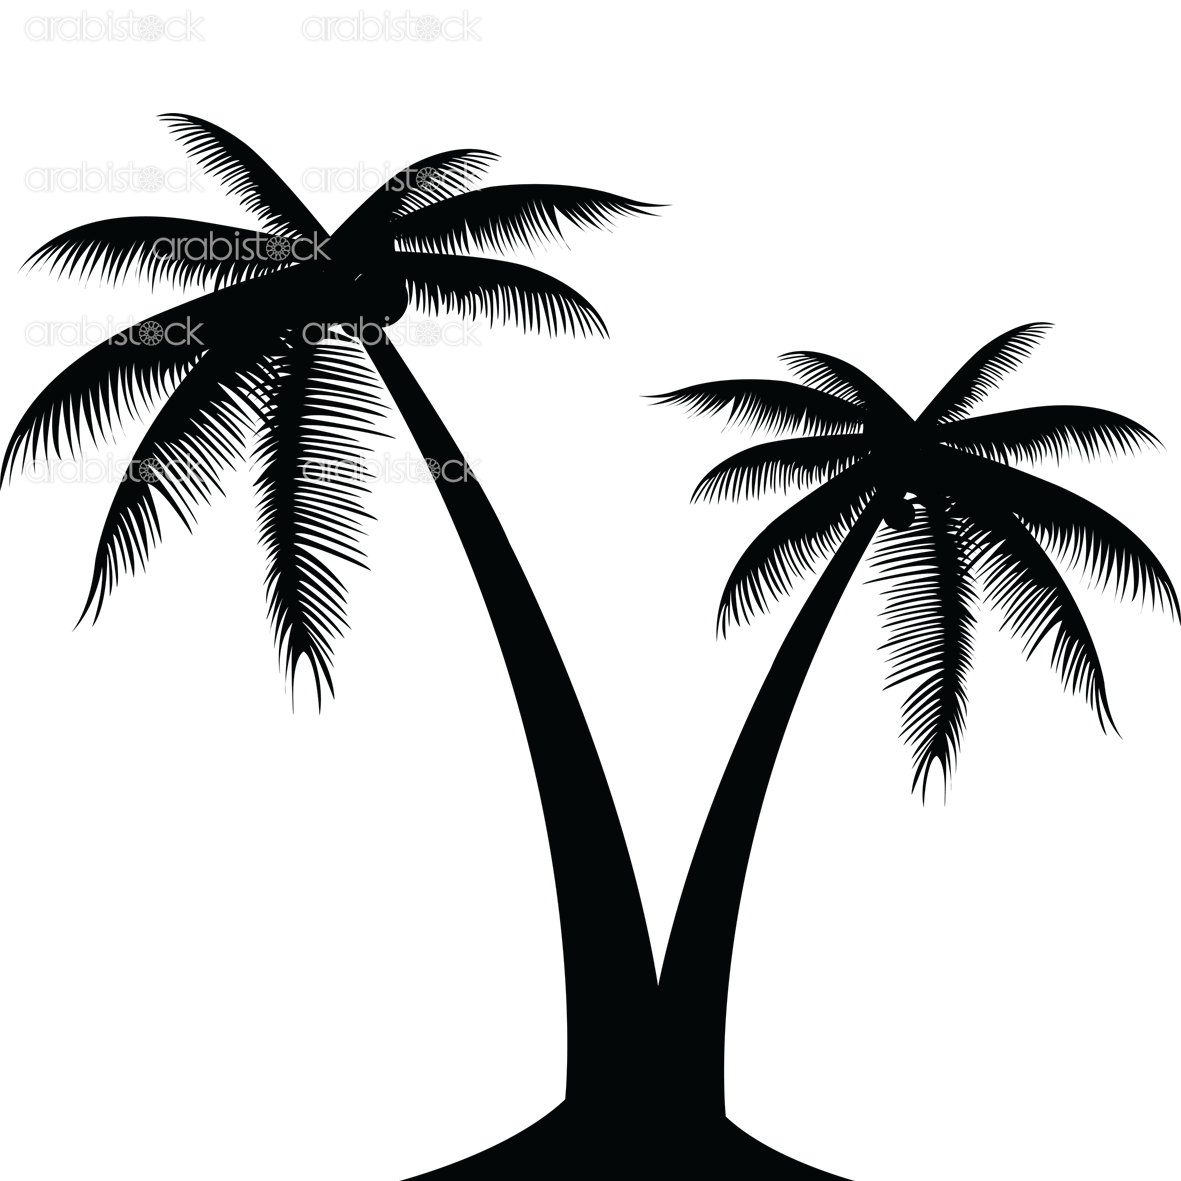 Palm tree silhouette clipart no background graphic transparent library Silhouette Palm Tree (56+) graphic transparent library